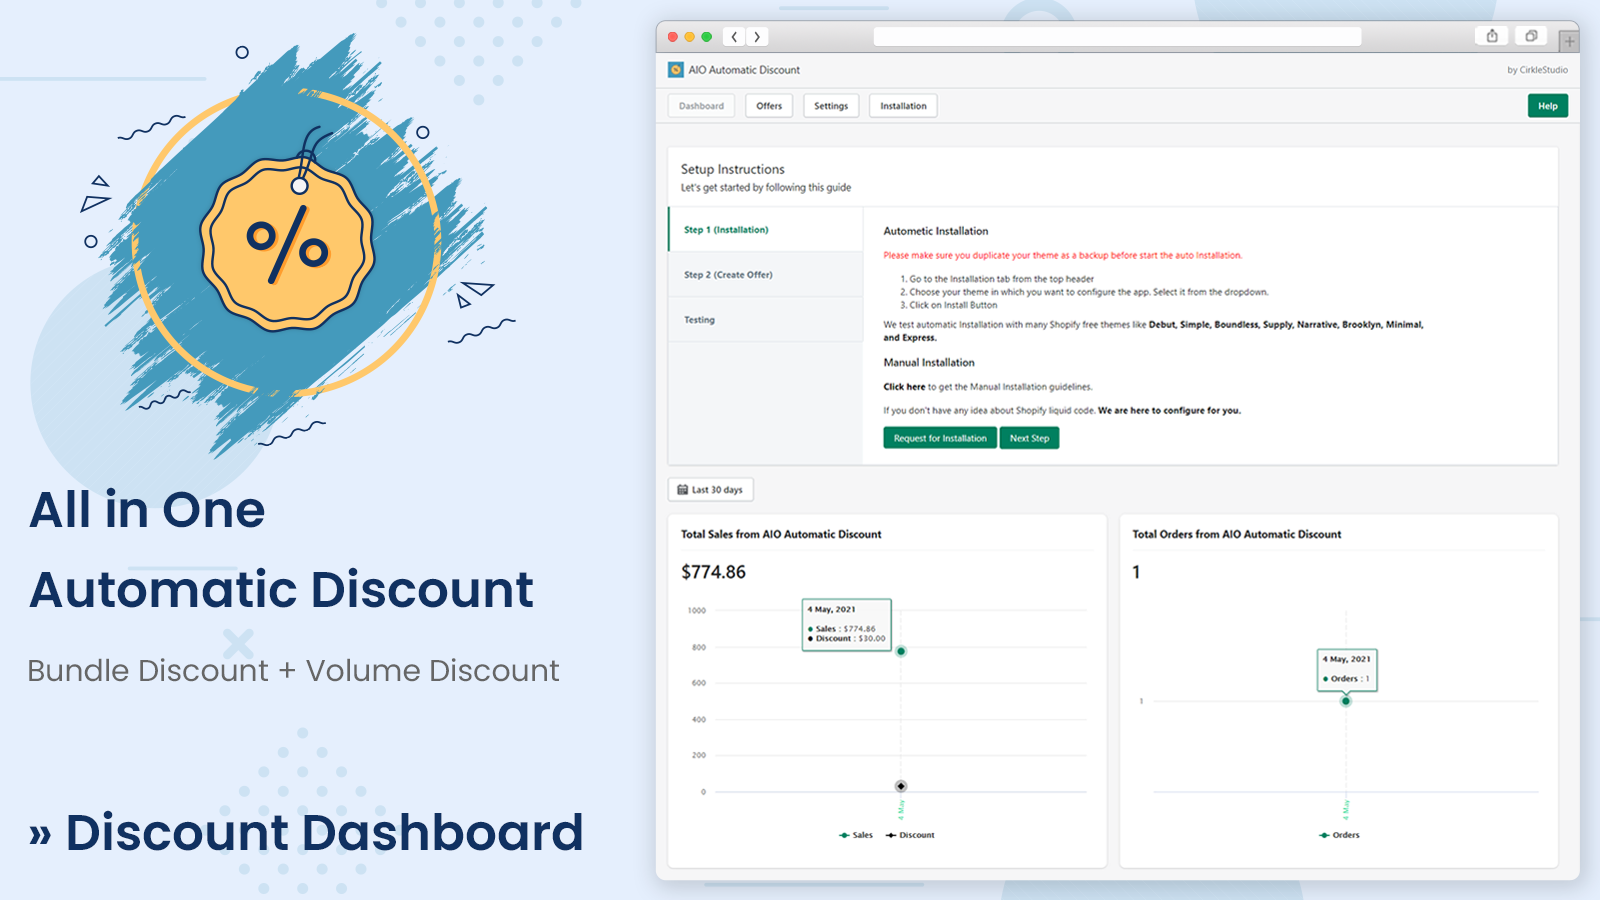 Dashboard of the AIO Automatic Discount